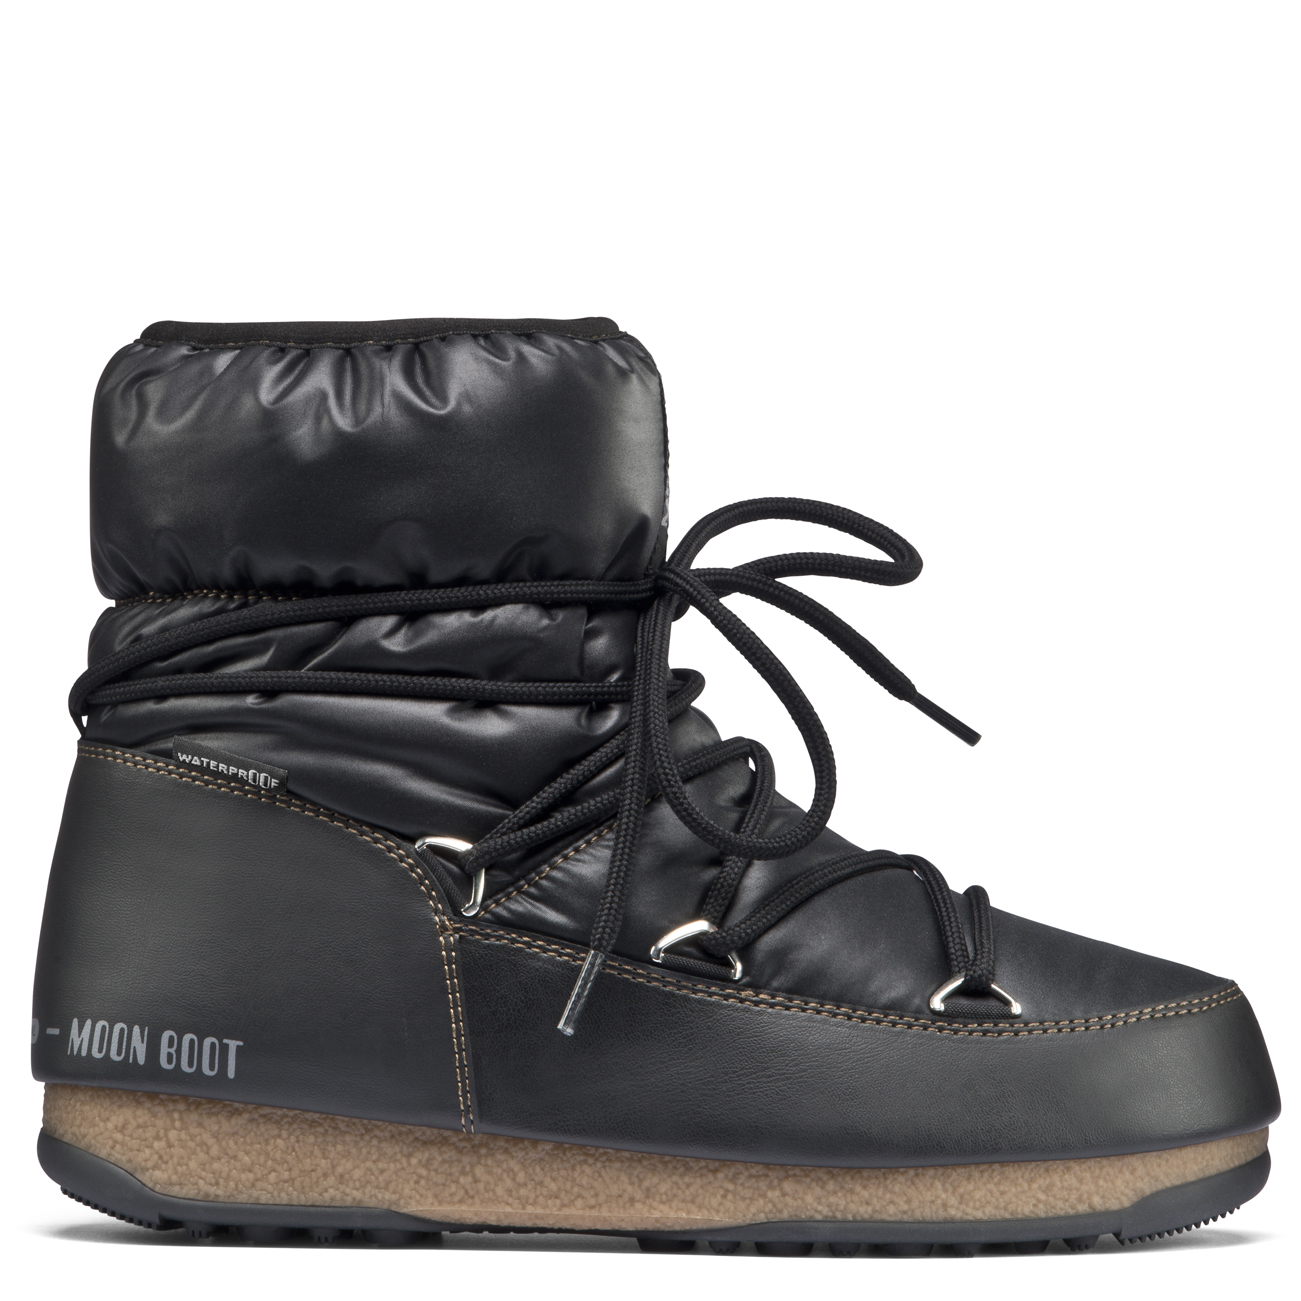 Tecnica Moon Boot W.E Low Nylon